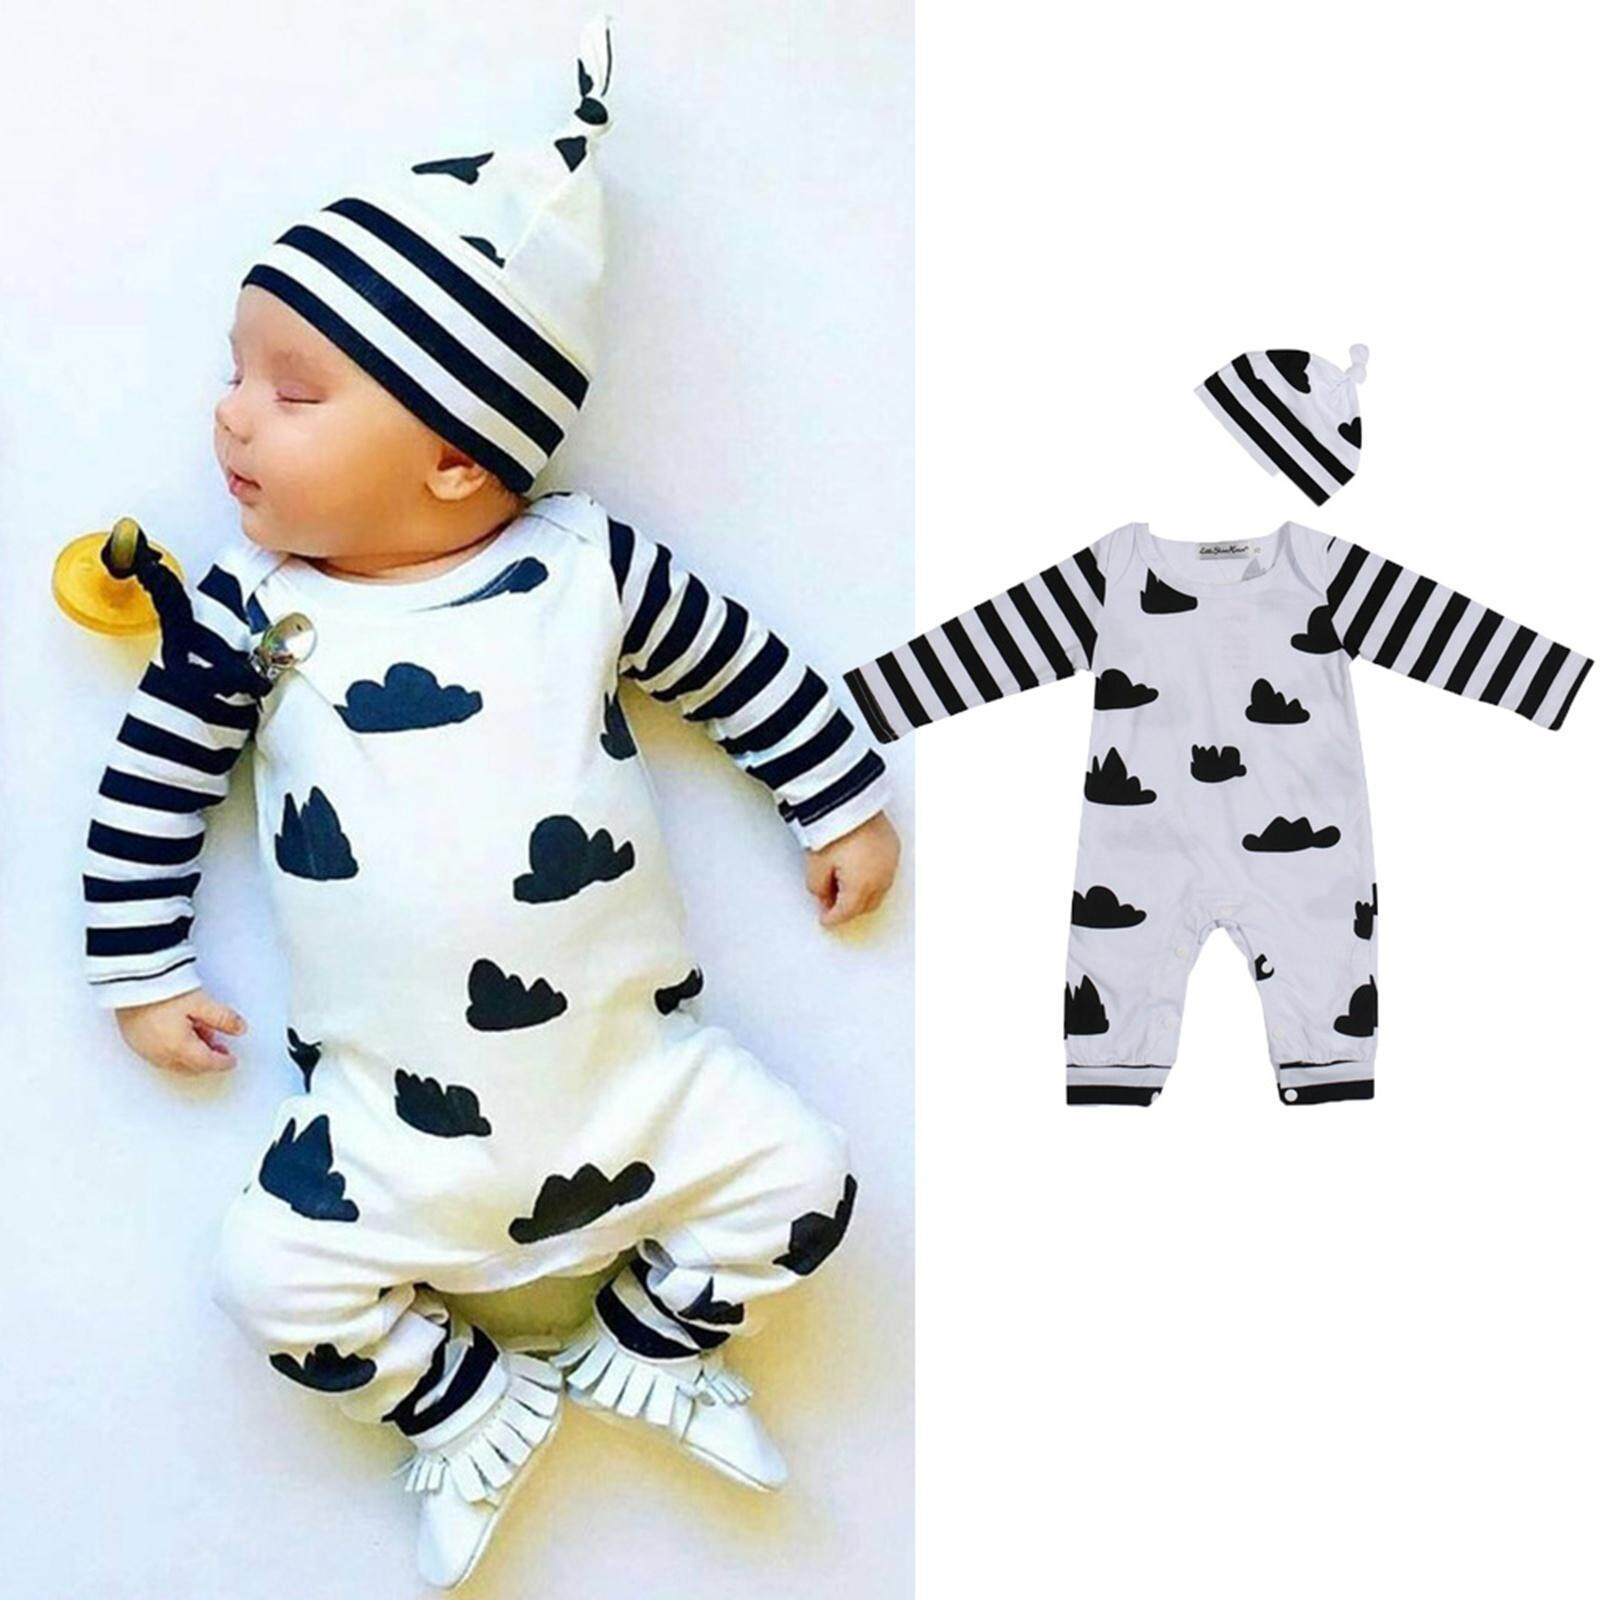 056c002c3 2Pcs Cute&Soft Newborn Infant Baby Clothes Romper + Hat Outfits Sets Toddler  Kids Boys and Girls